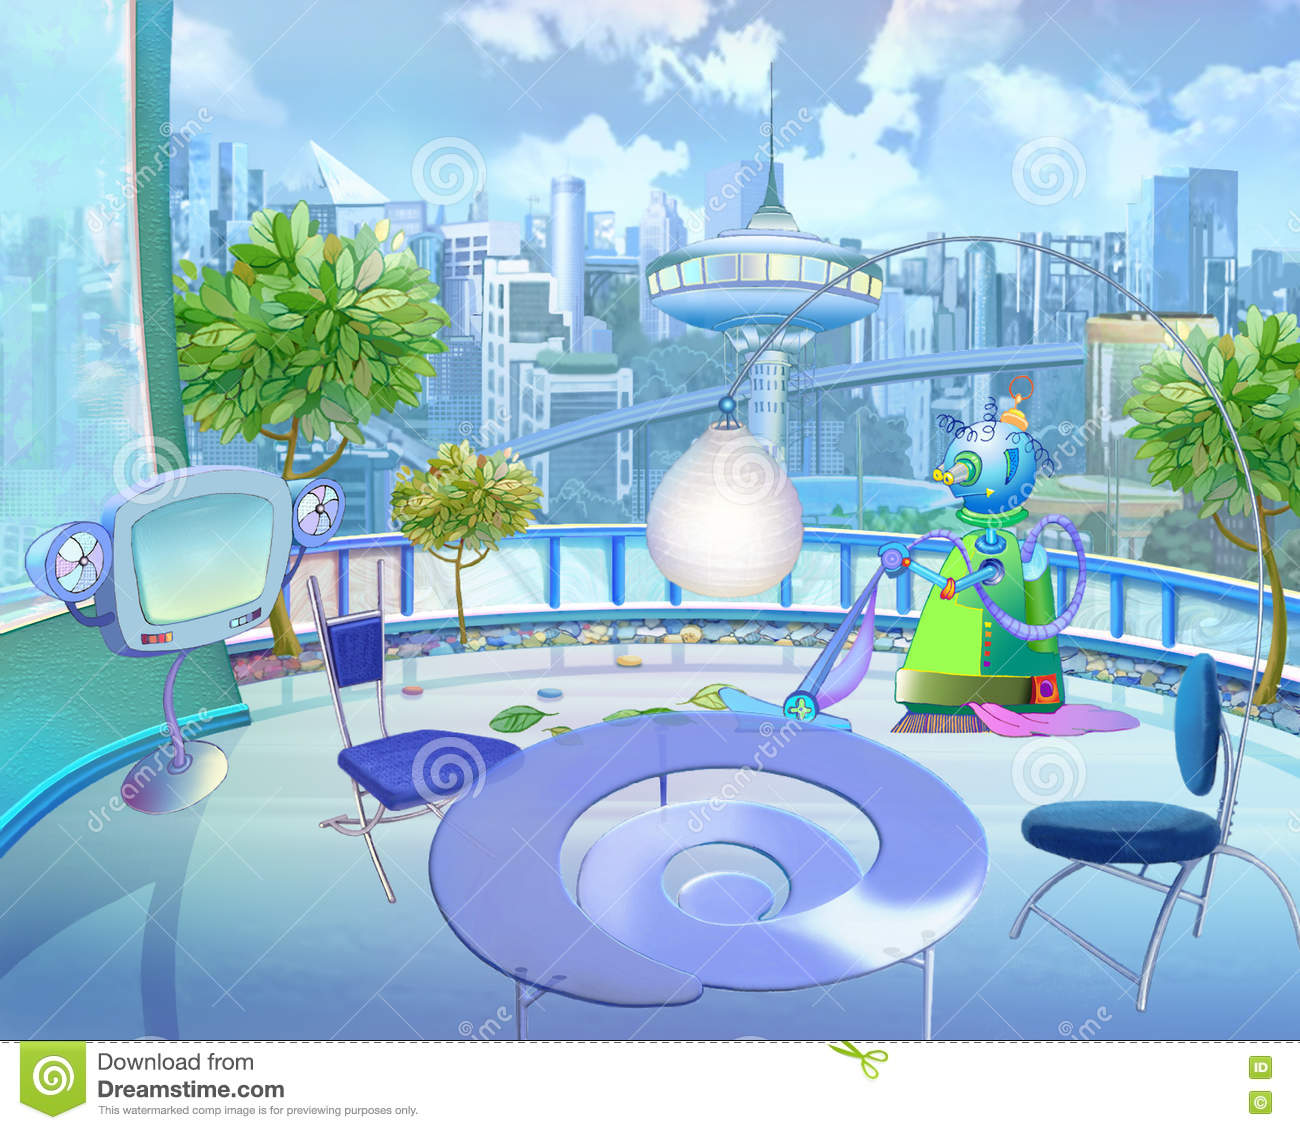 City Of The Future In Children's Fantasies Stock ...